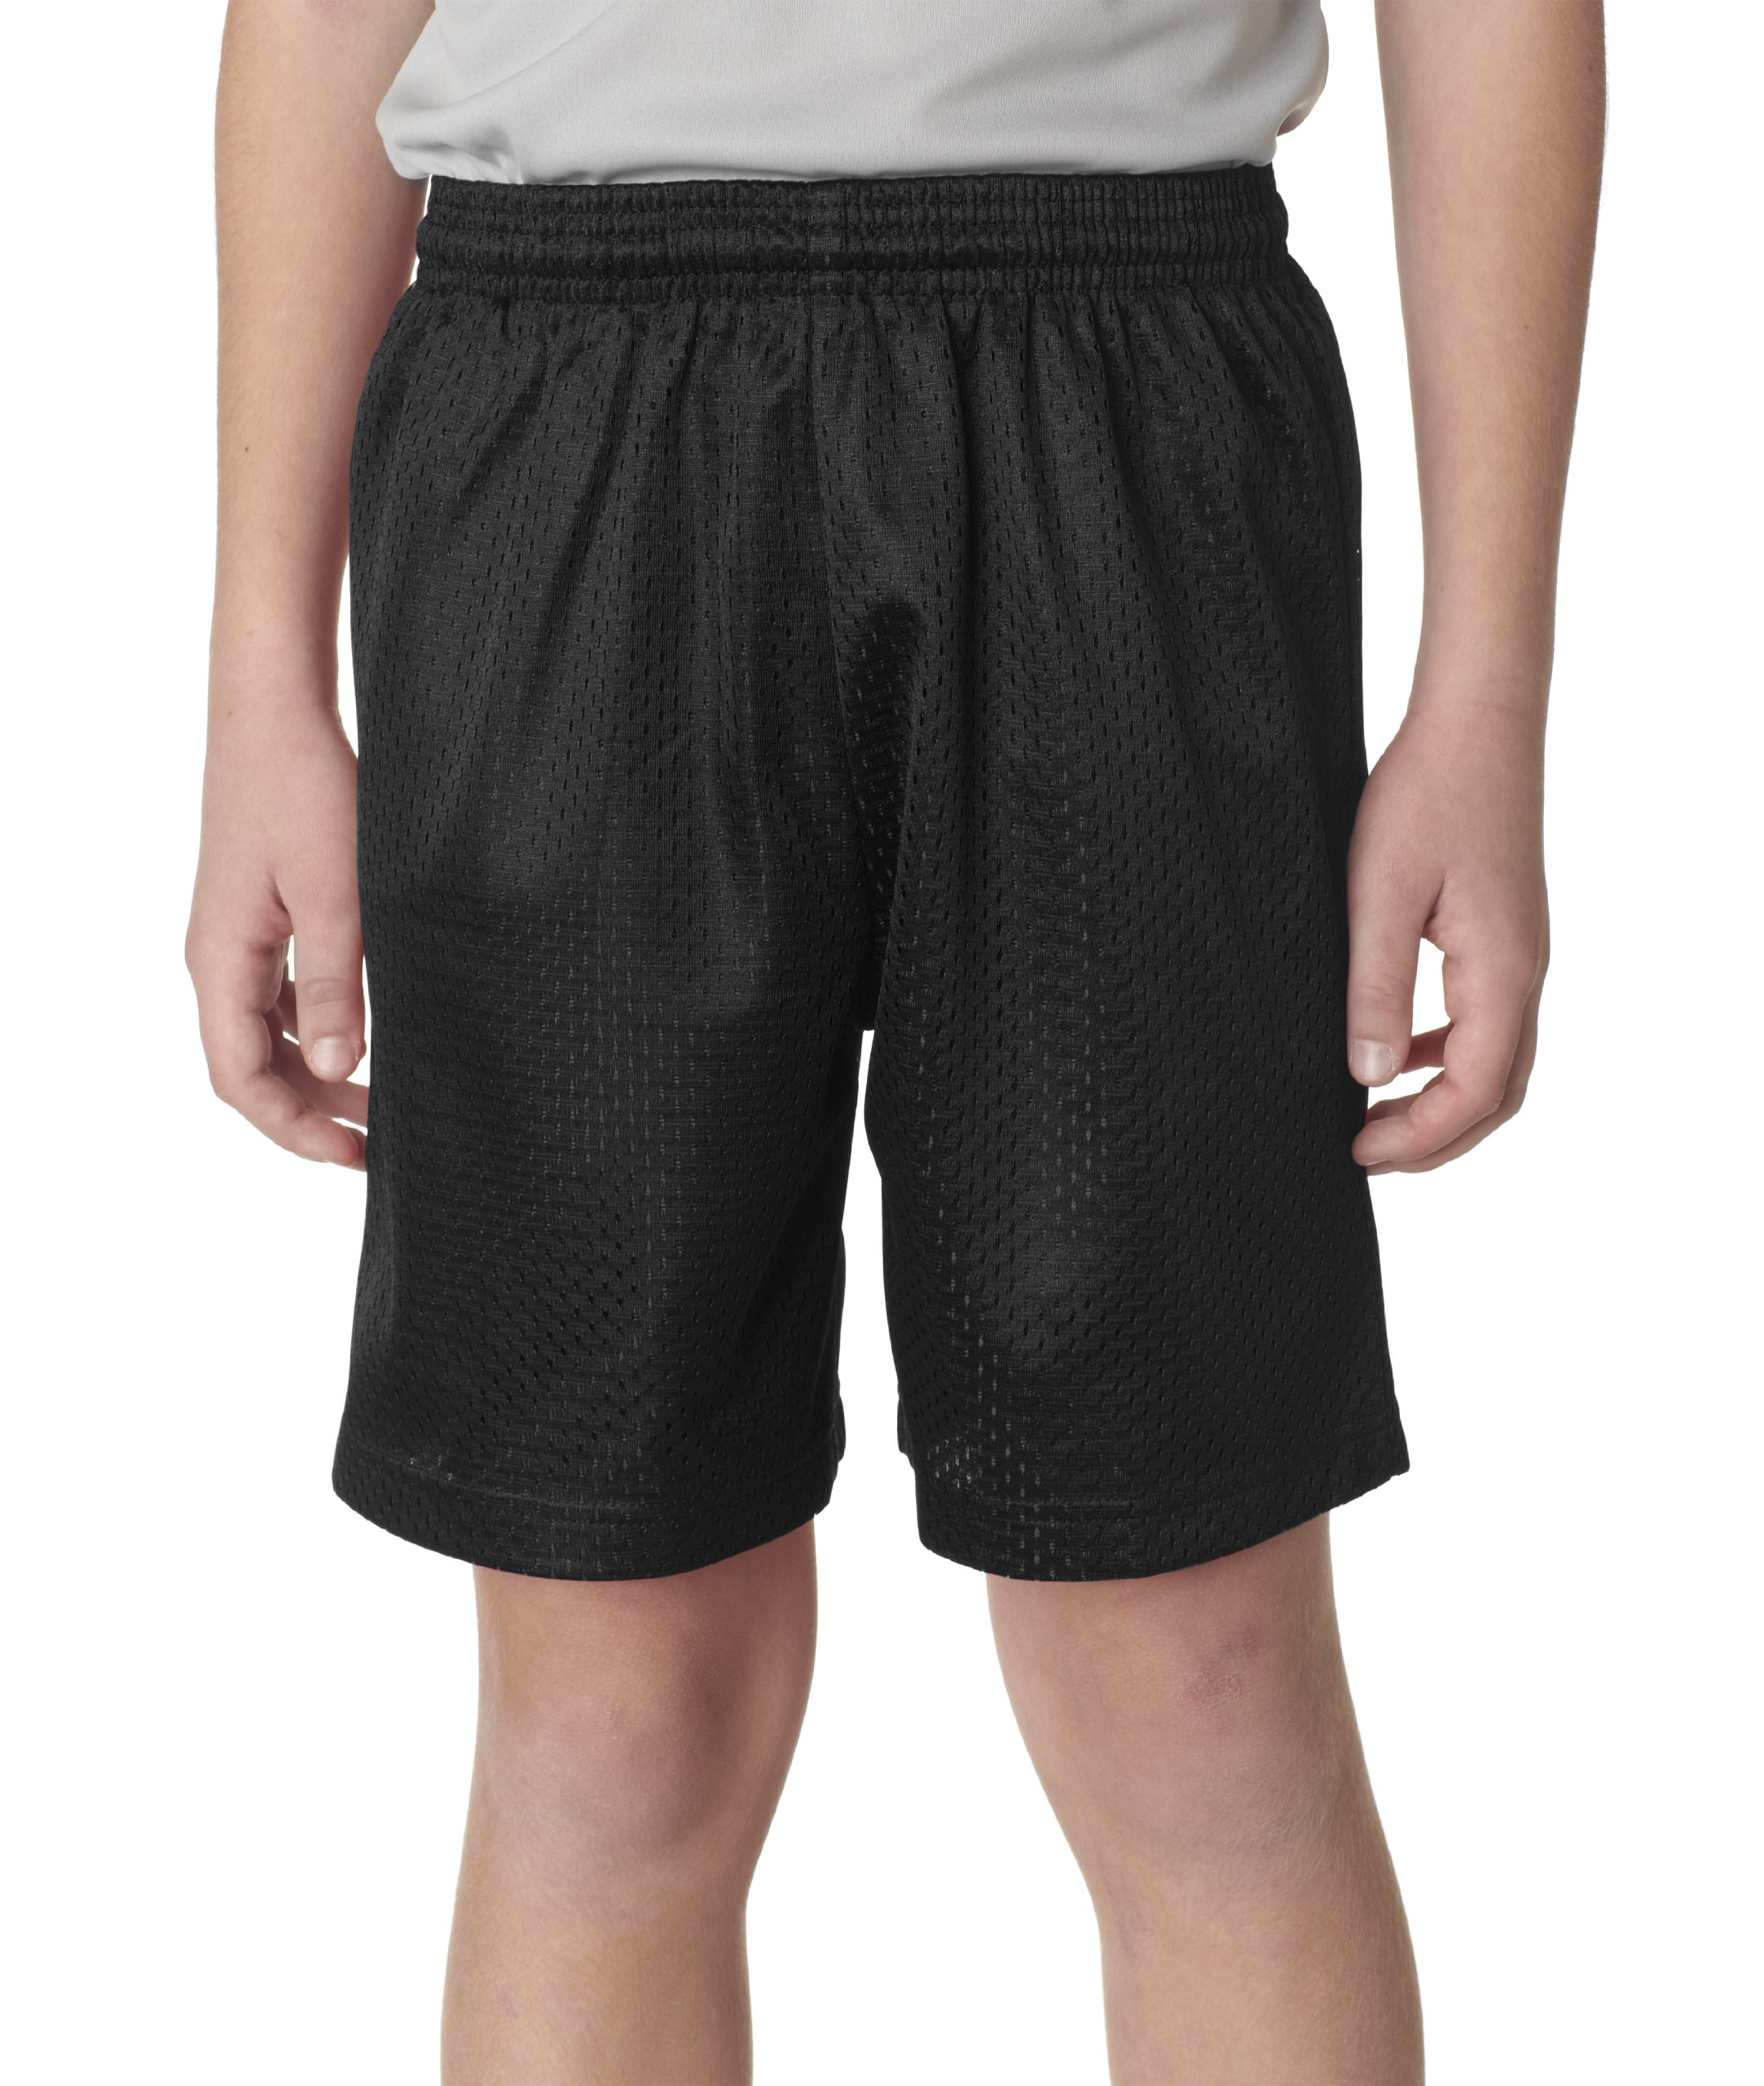 A4 NB5301-BLK Lined Tricot Mesh Shorts, X-Small, Black